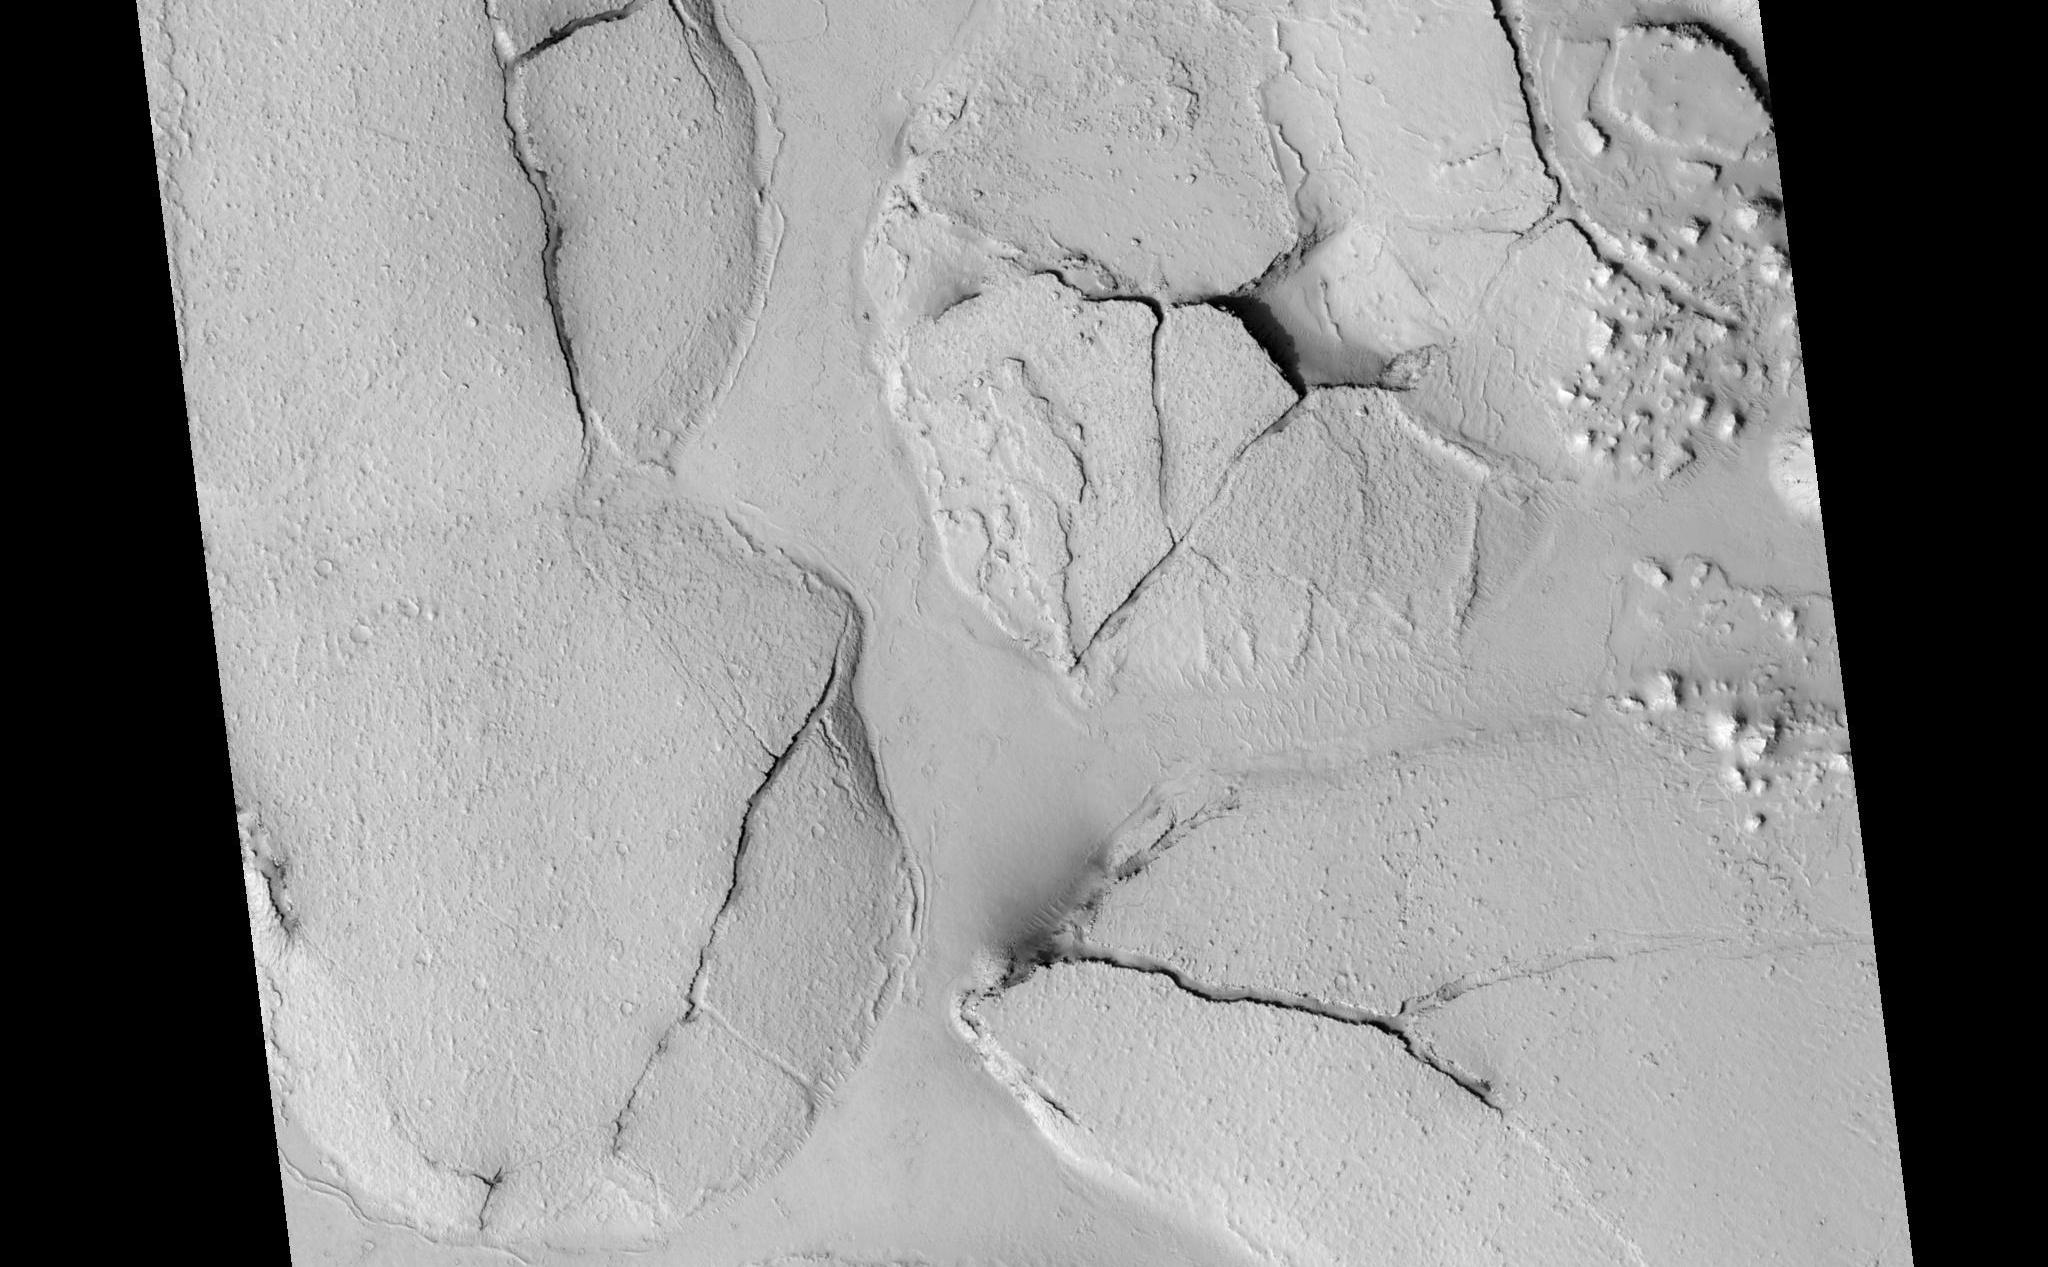 This HiRISE image (PSP_003597_1765), shows fractured mounds on the southern edge of Elysium Planitia.  The mounds are typically a few kilometers in diameter and about 200 feet tall. The fractures that crisscross their surfaces are dilational (extensional) in nature, suggesting that the mounds formed by localized uplift (i.e., they were pushed up from below).  The mounds are probably composed of solidified lava. They are contiguous with, and texturally similar to, the flood lavas that blanket much of Elysium Planitia, and, where dilation cracks provide cross-sectional exposure, the uplifted material is rocky.  Patches of mechanically weak and disrupted material overlie the rocky mound material. This is particularly conspicuous in the northeast corner of the HiRISE image. These patches may be remnants of a layer that was once more continuous but has been extensively eroded. Smooth lava plains fill the low-lying areas between the mounds. They are riddled with sinuous pressure ridges. The entire area is covered by a relatively thin layer of dust and sand.